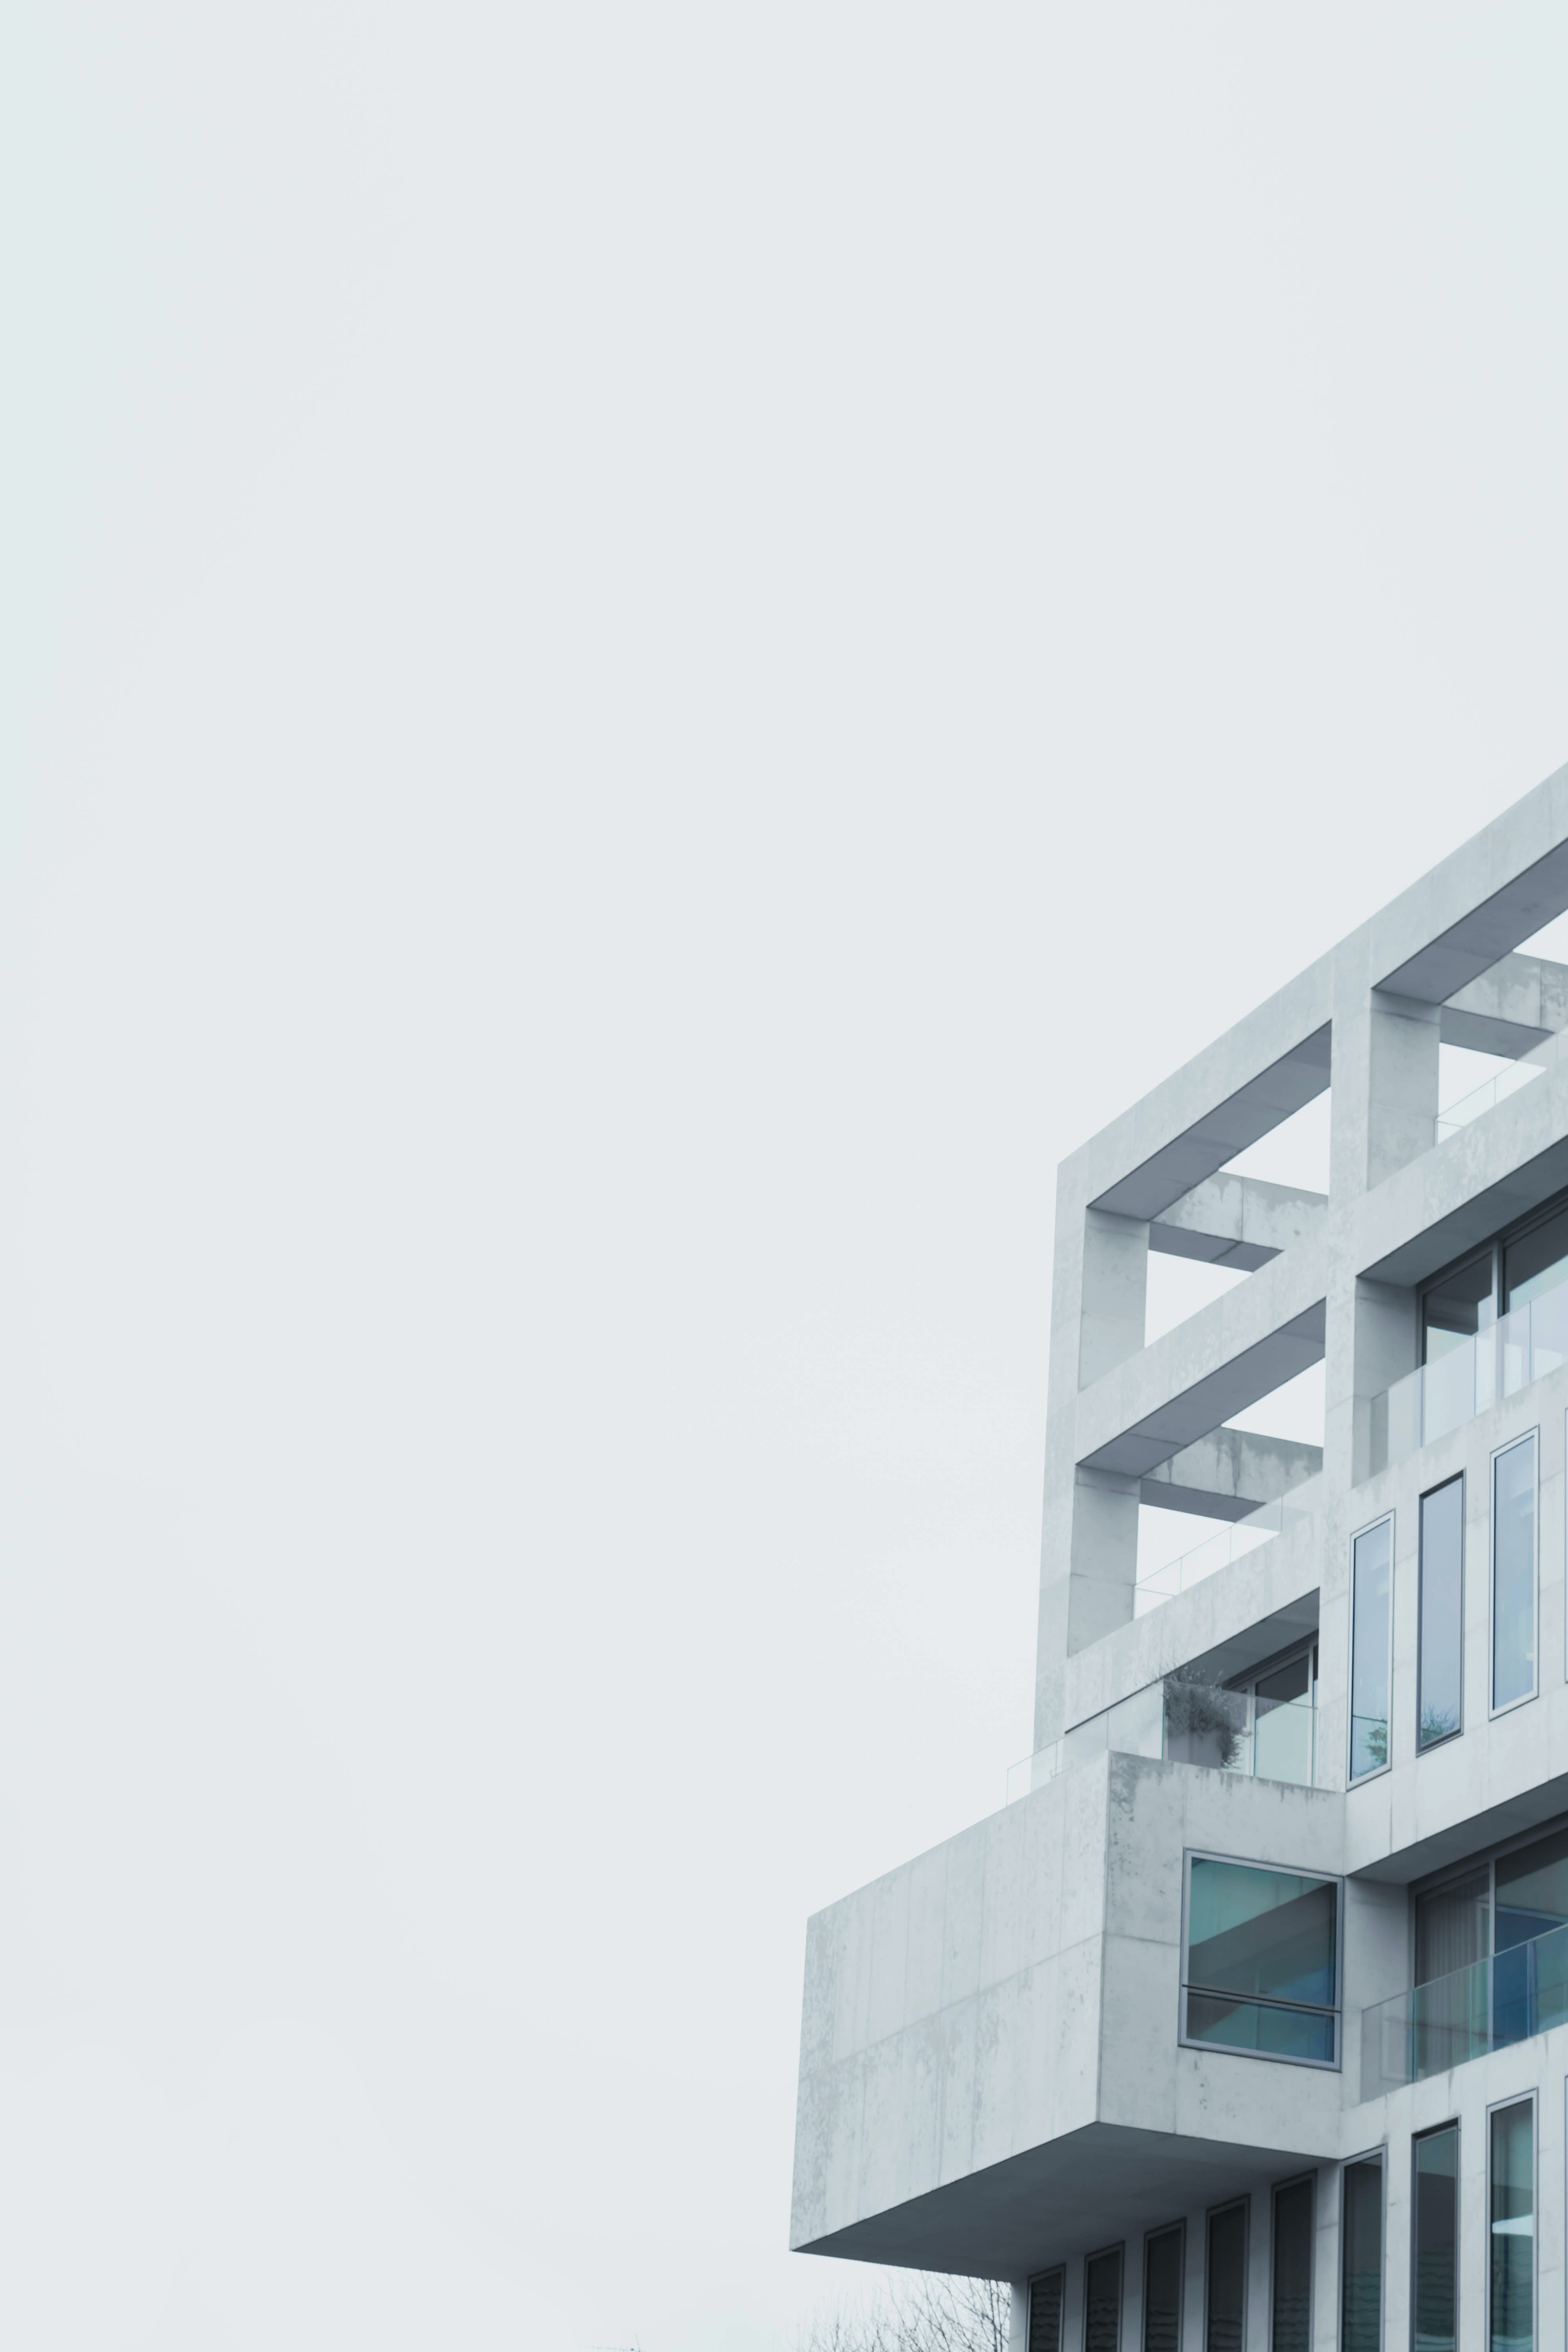 An austere white marble building facade in London